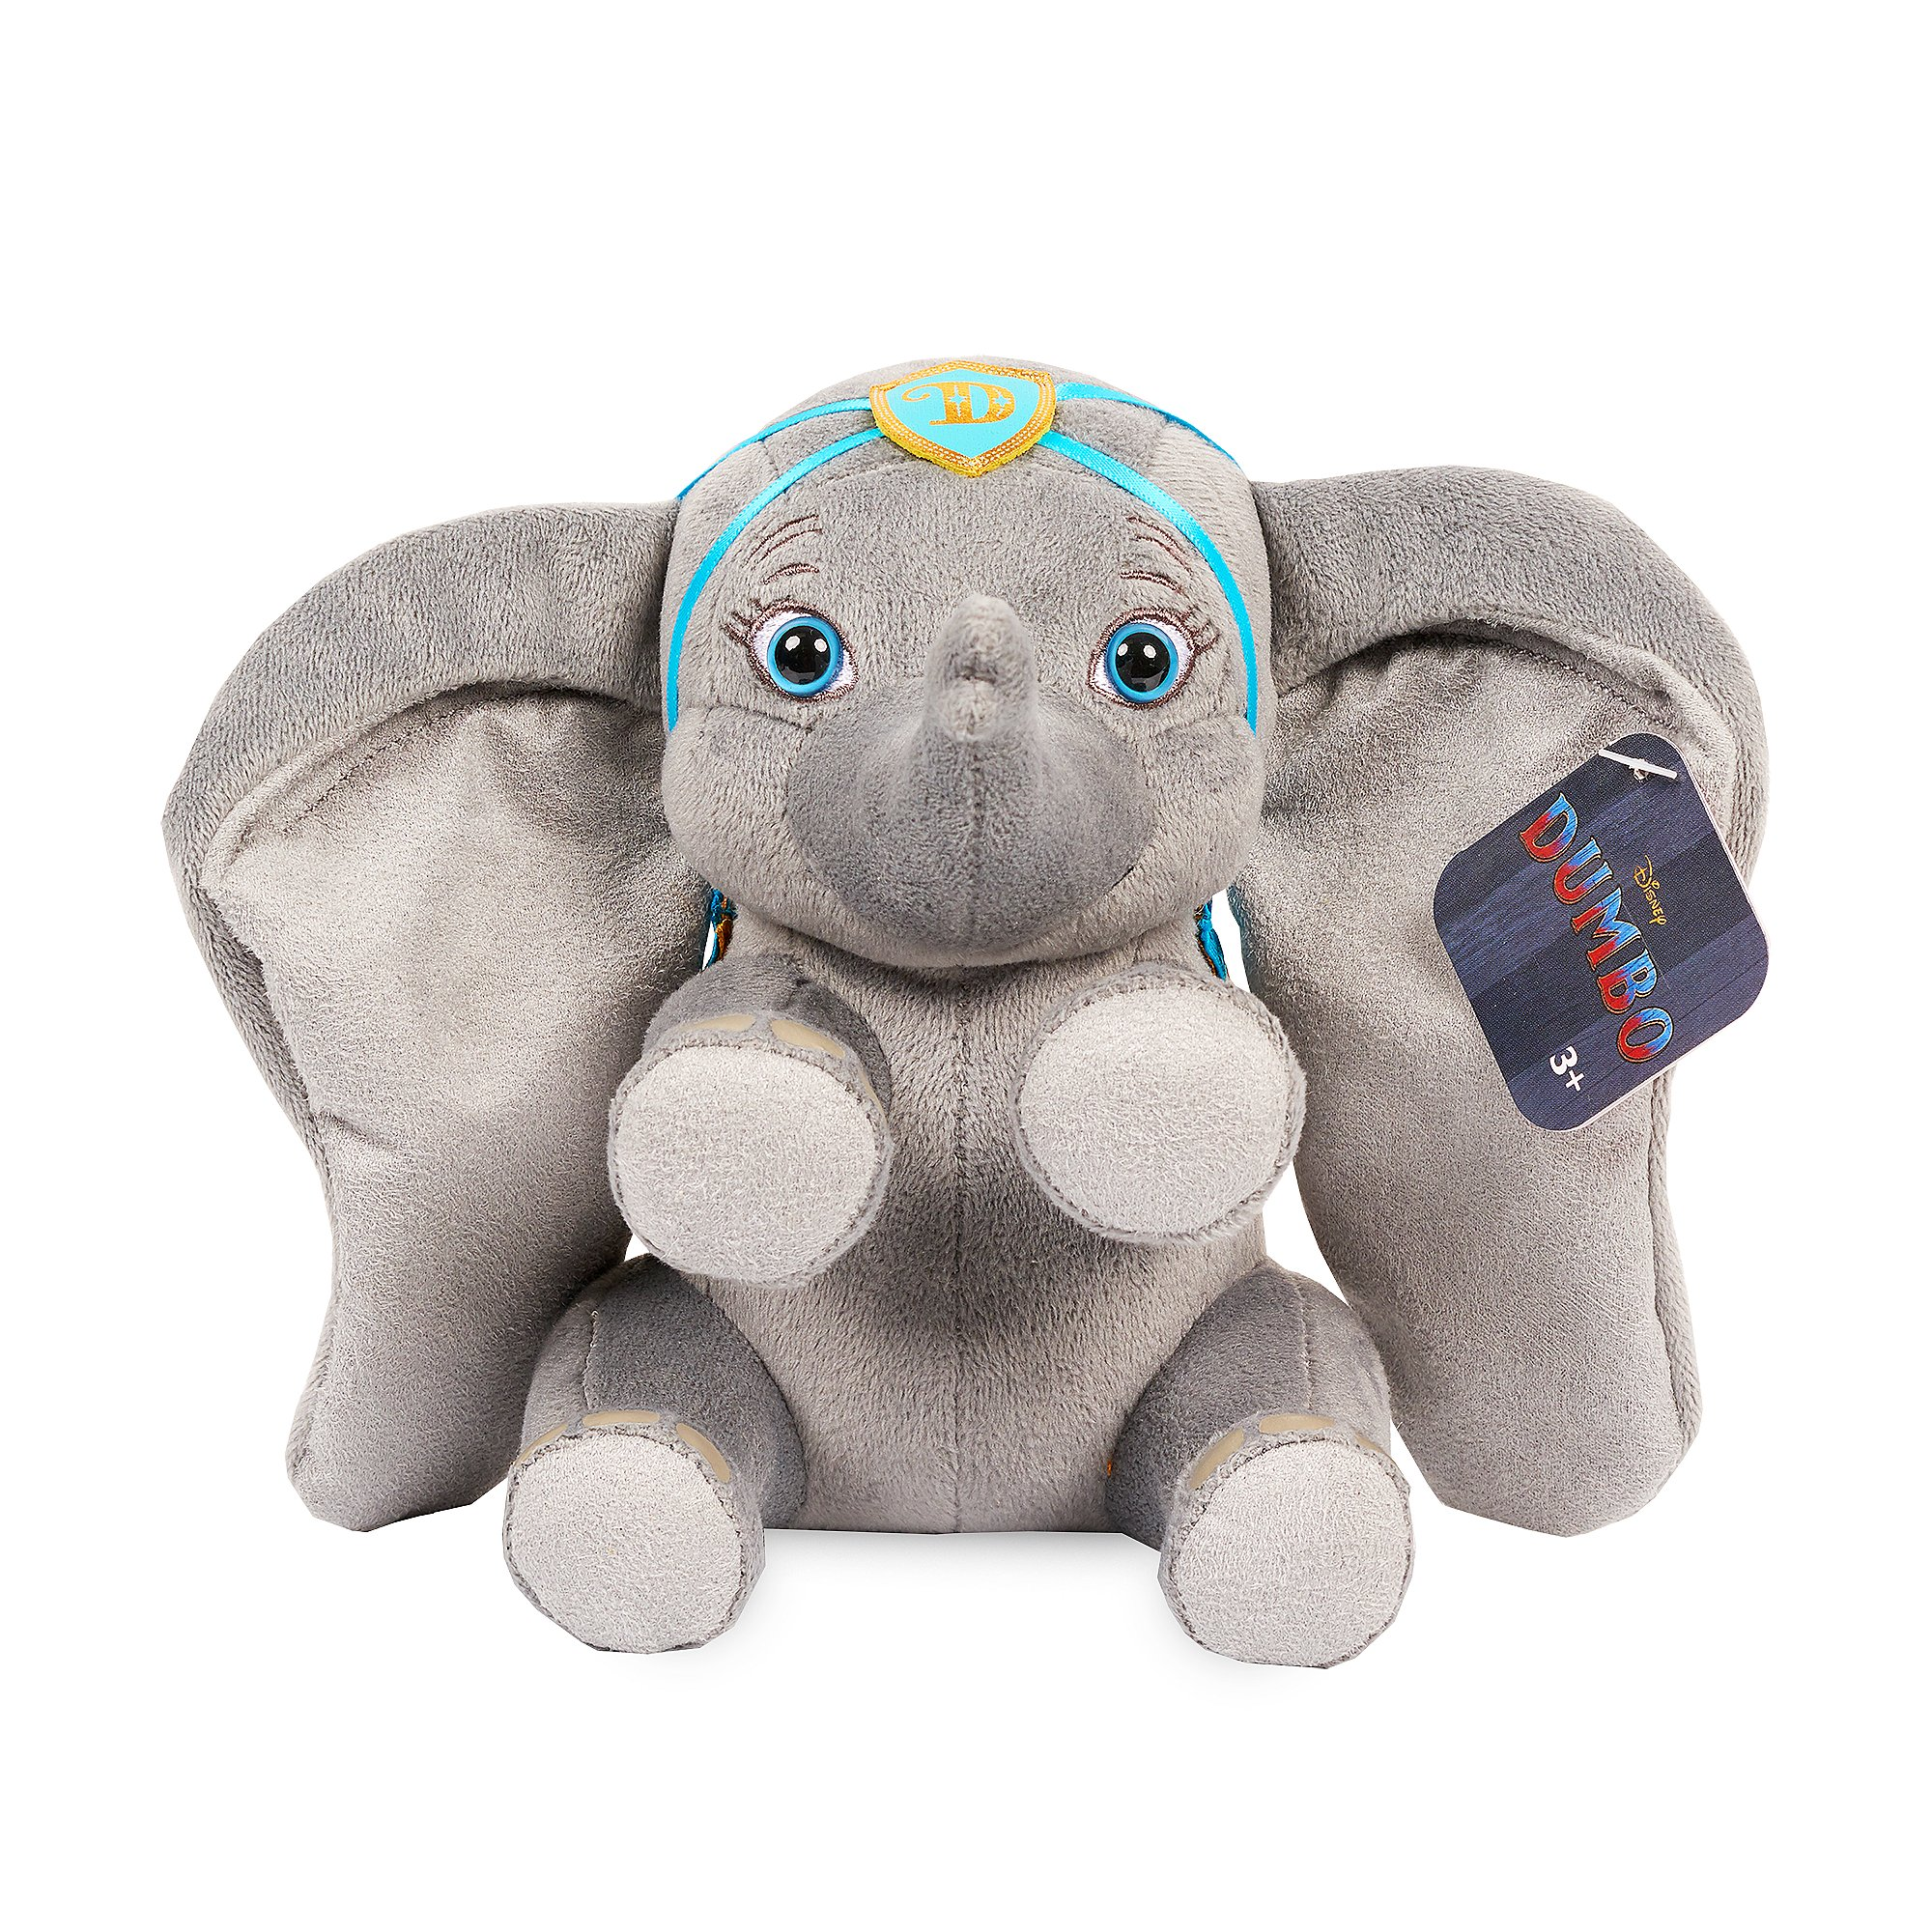 Disney Live Action Dumbo Small Dumbo Blue Outfit Plush Soft Toy